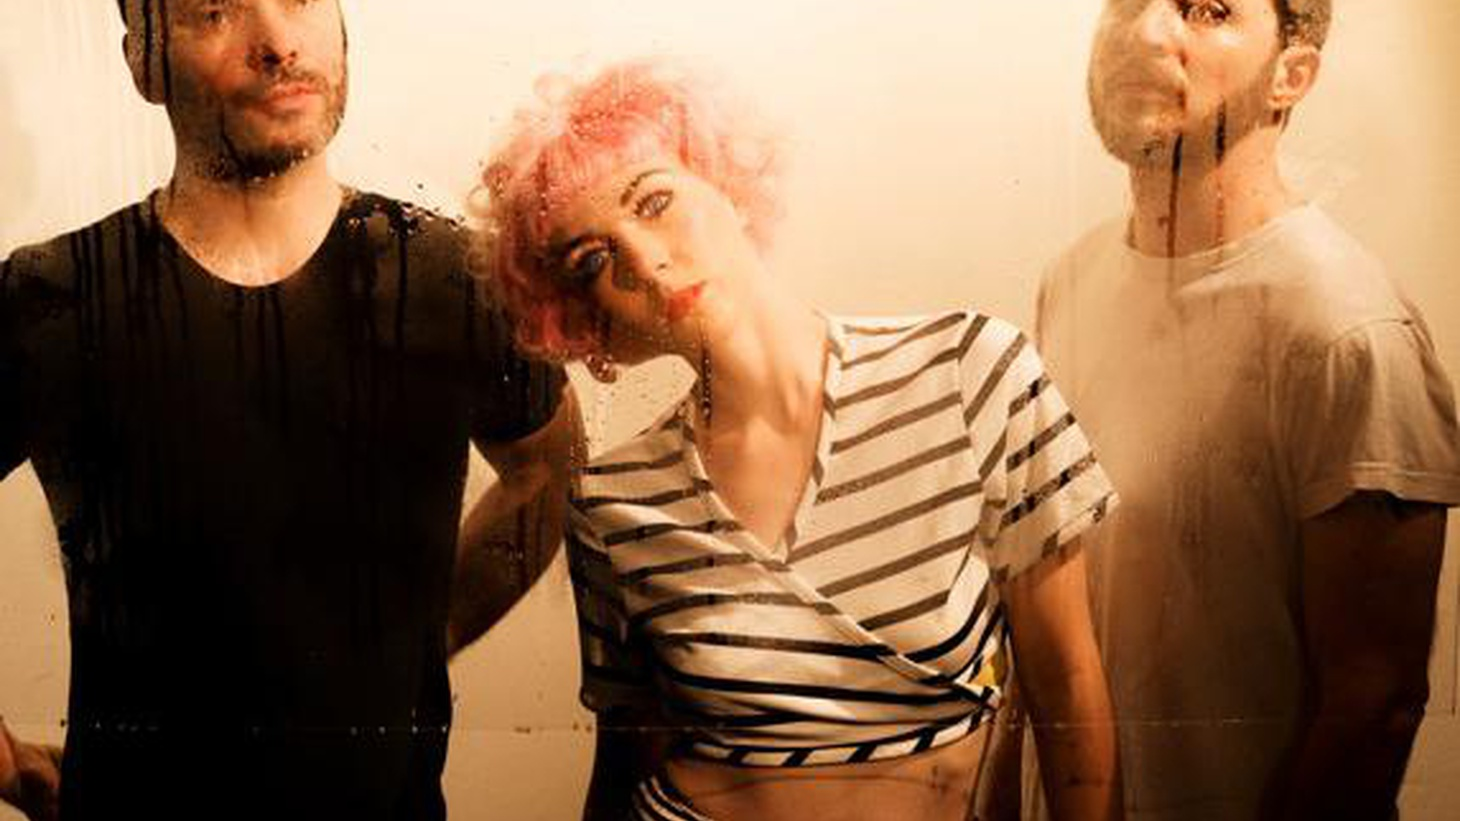 Radiohead producer Nigel Godrich and Beck's drummer Joey Waronker team up with vocalist Laura Bettinson as Ultraísta.